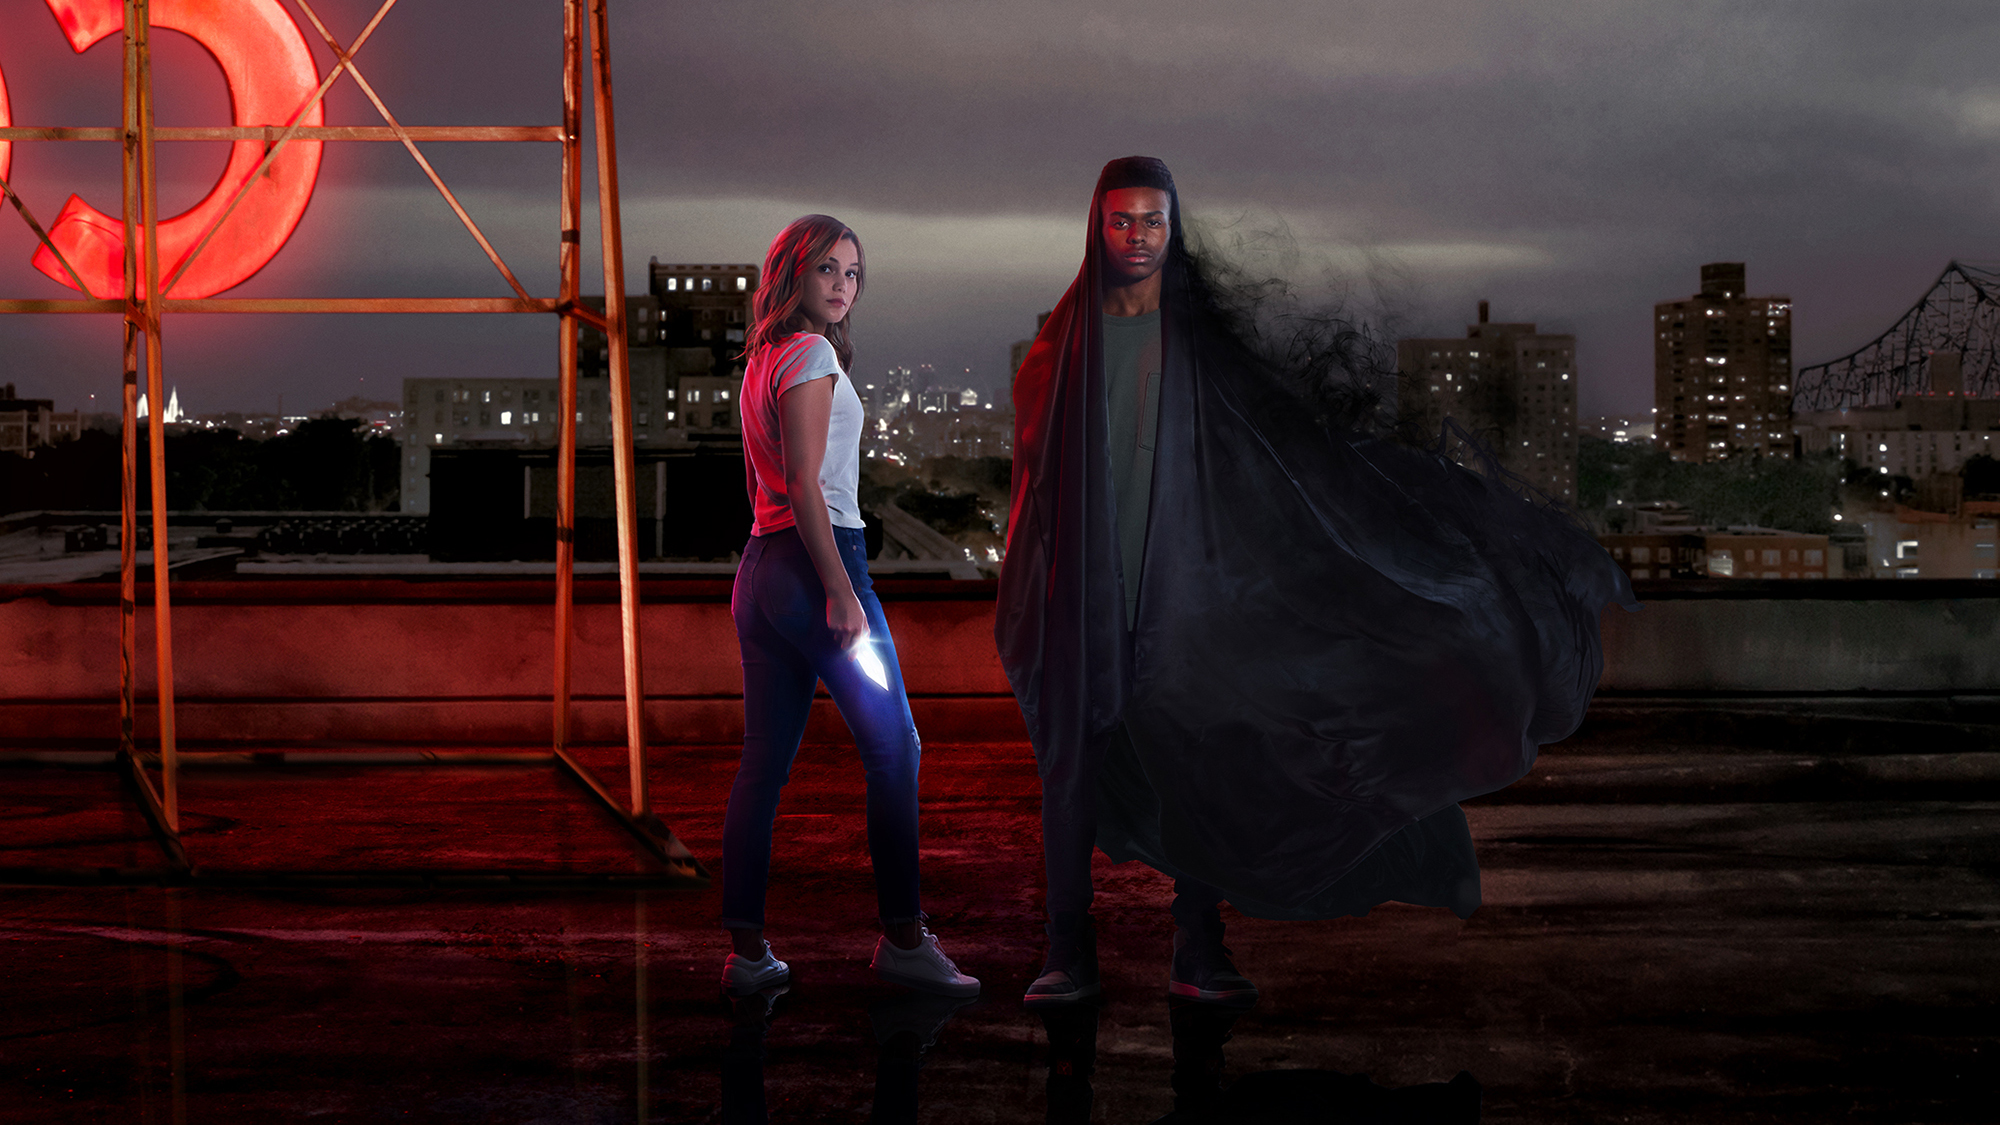 Cloak And Dagger Tv Show Hd Tv Shows 4k Wallpapers Images